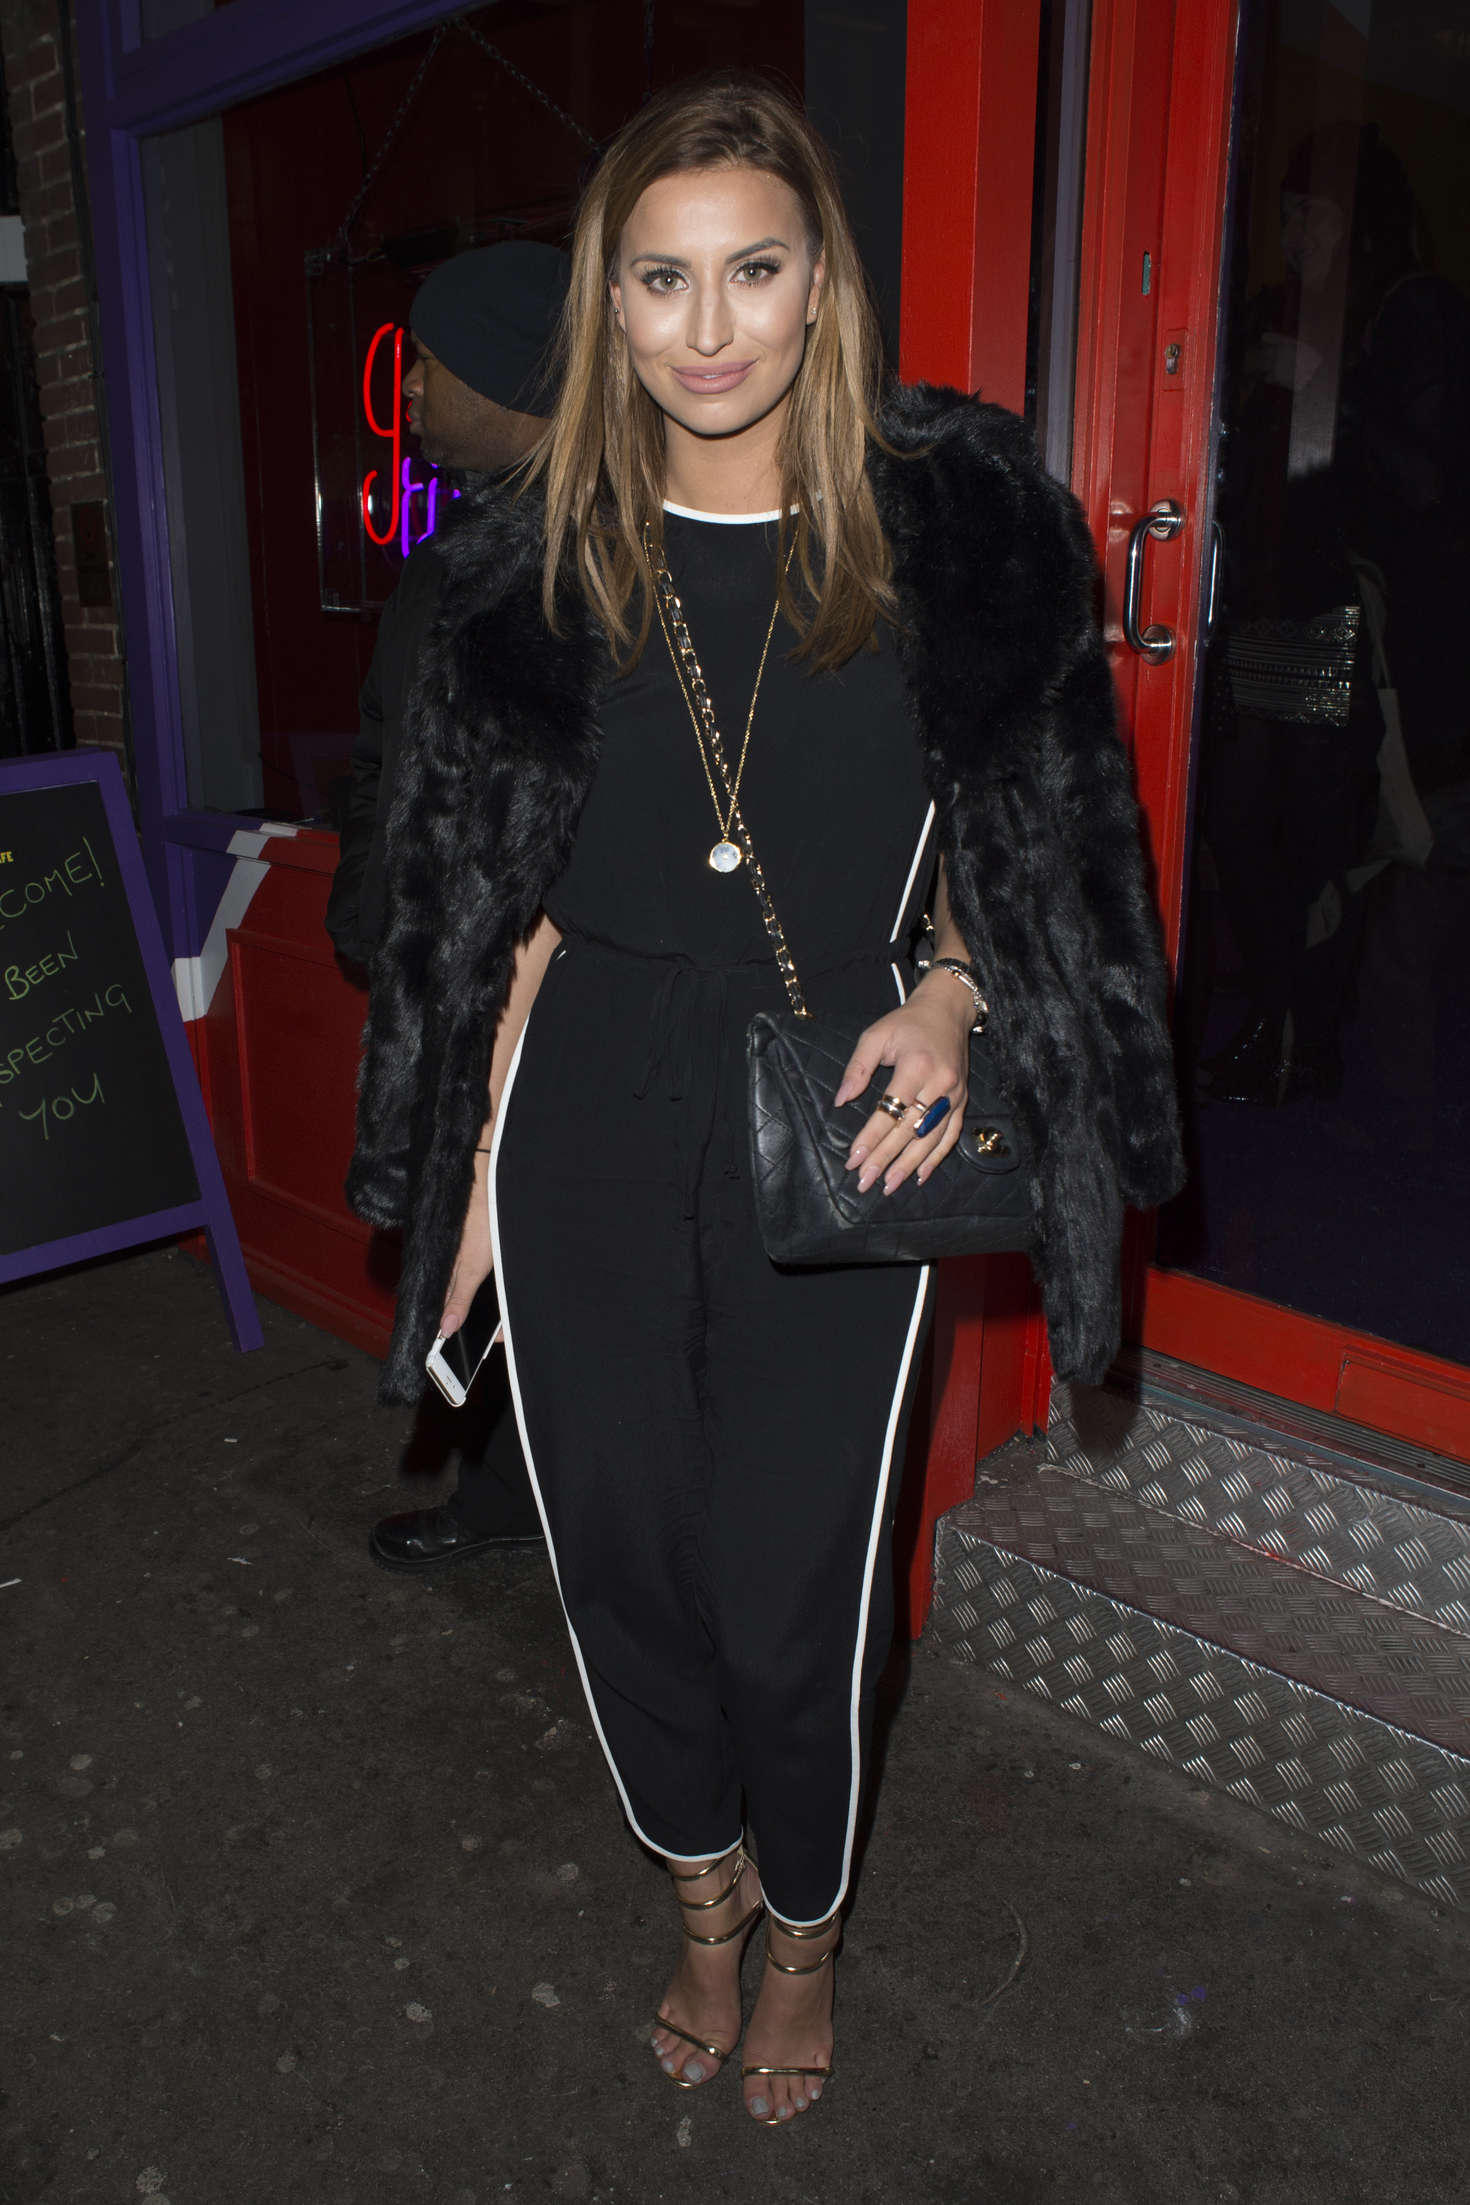 Ferne McCann Creme Egg Cafe Launch Night in Soho